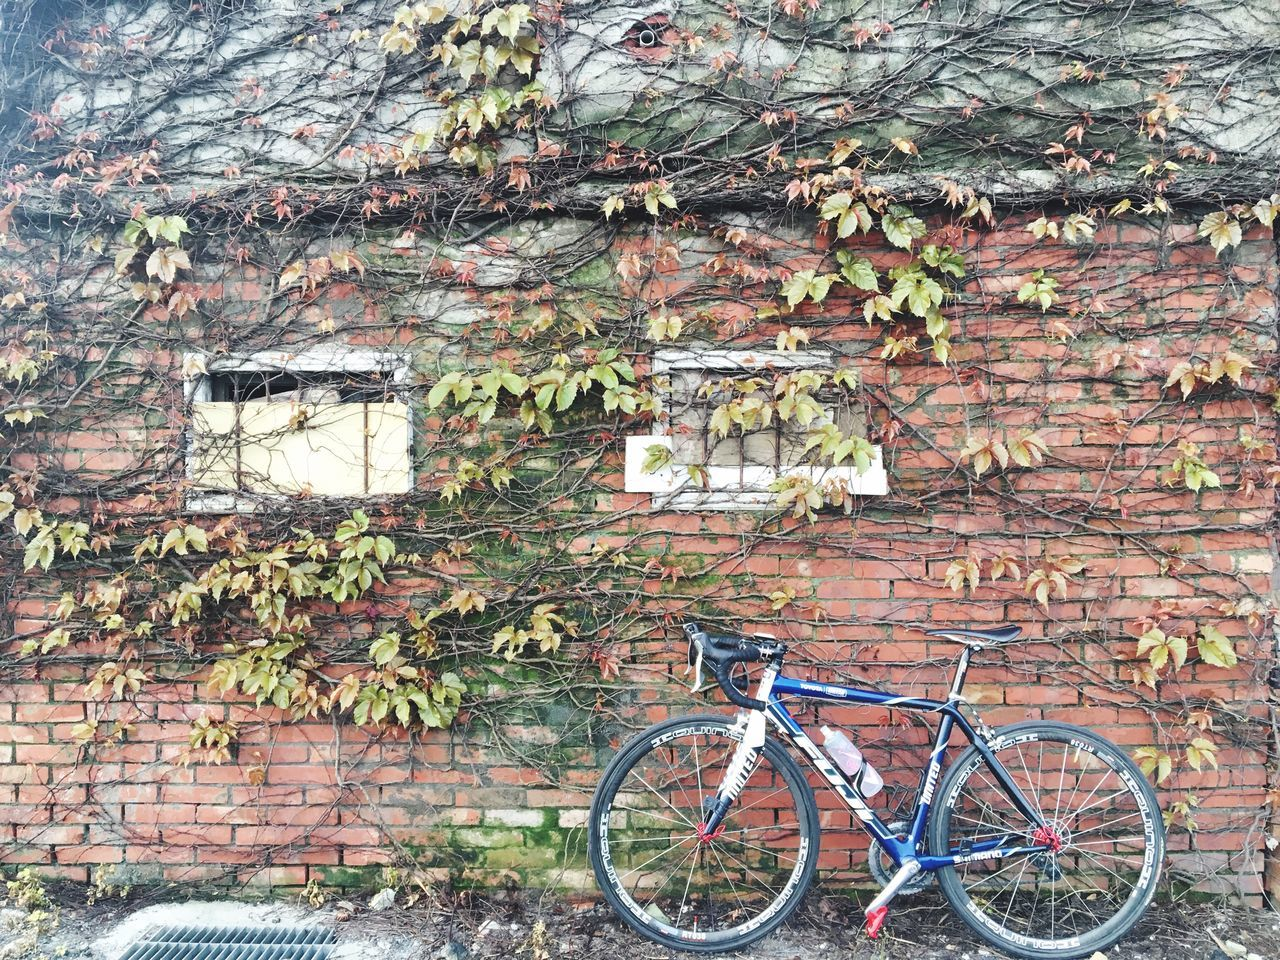 built structure, bicycle, building exterior, architecture, outdoors, day, brick wall, leaf, no people, tree, ivy, growth, plant, nature, branch